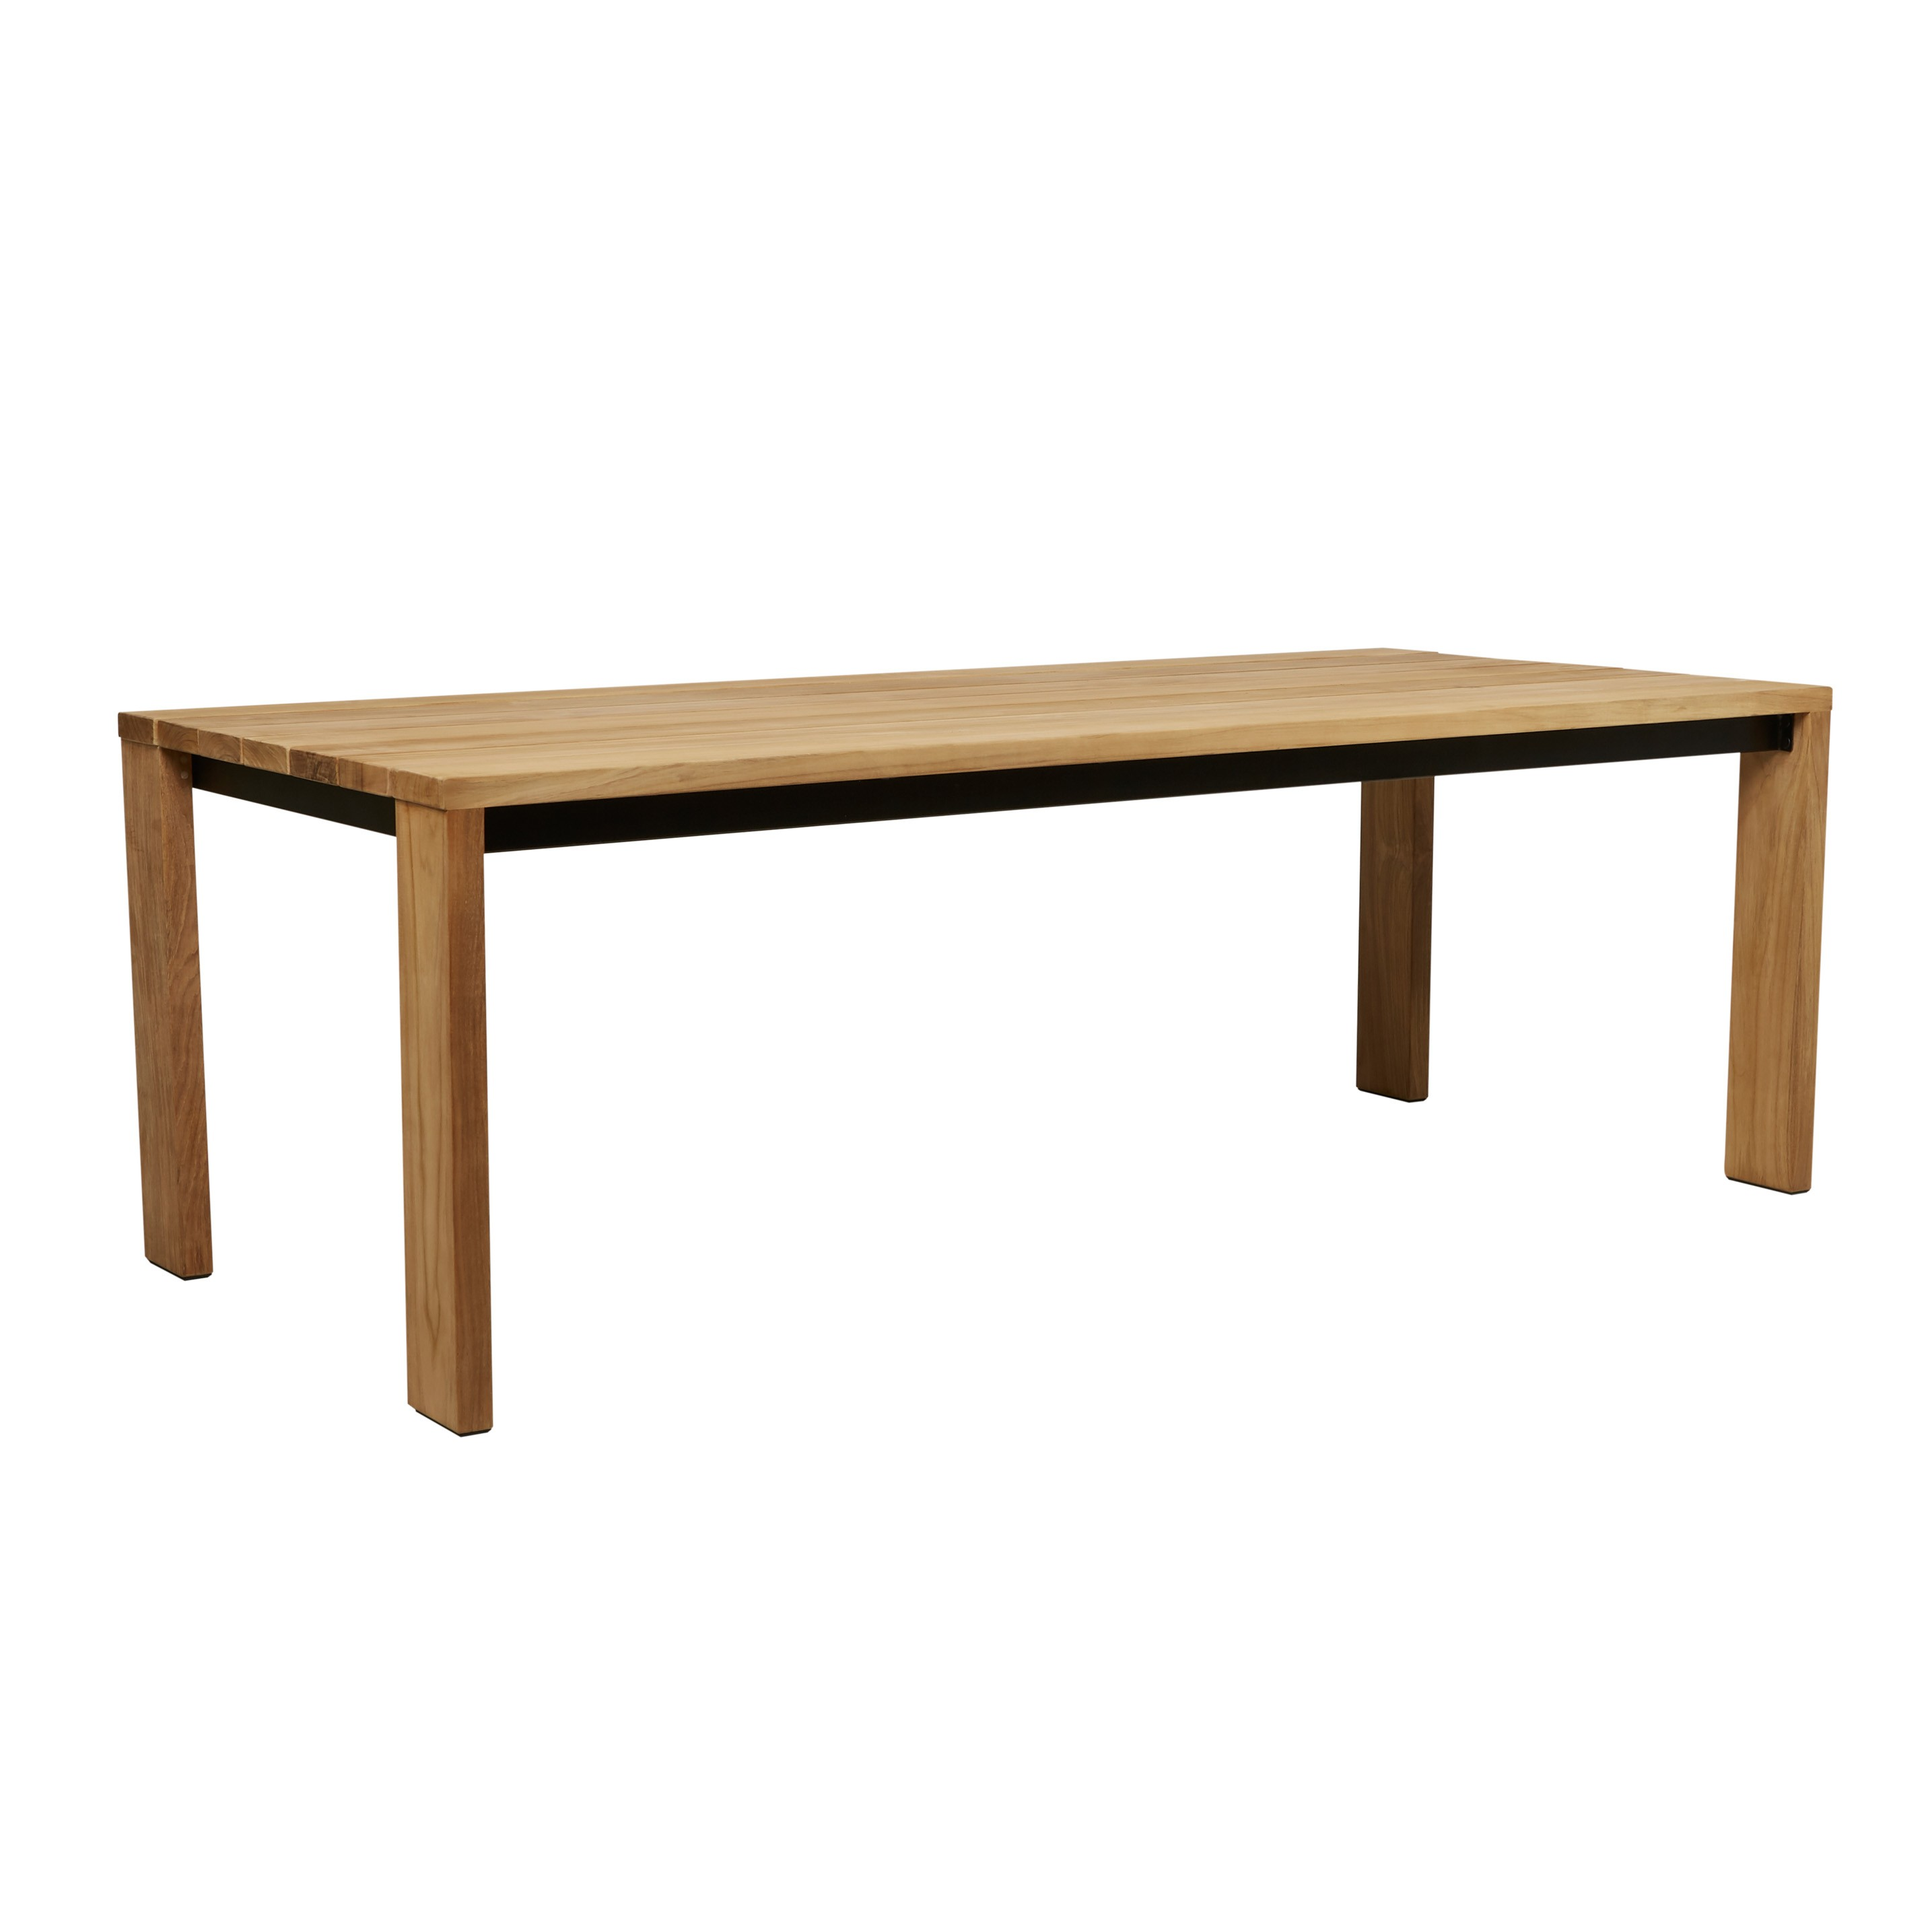 Furniture Hero-Images Dining-Tables hamptons-dining-table